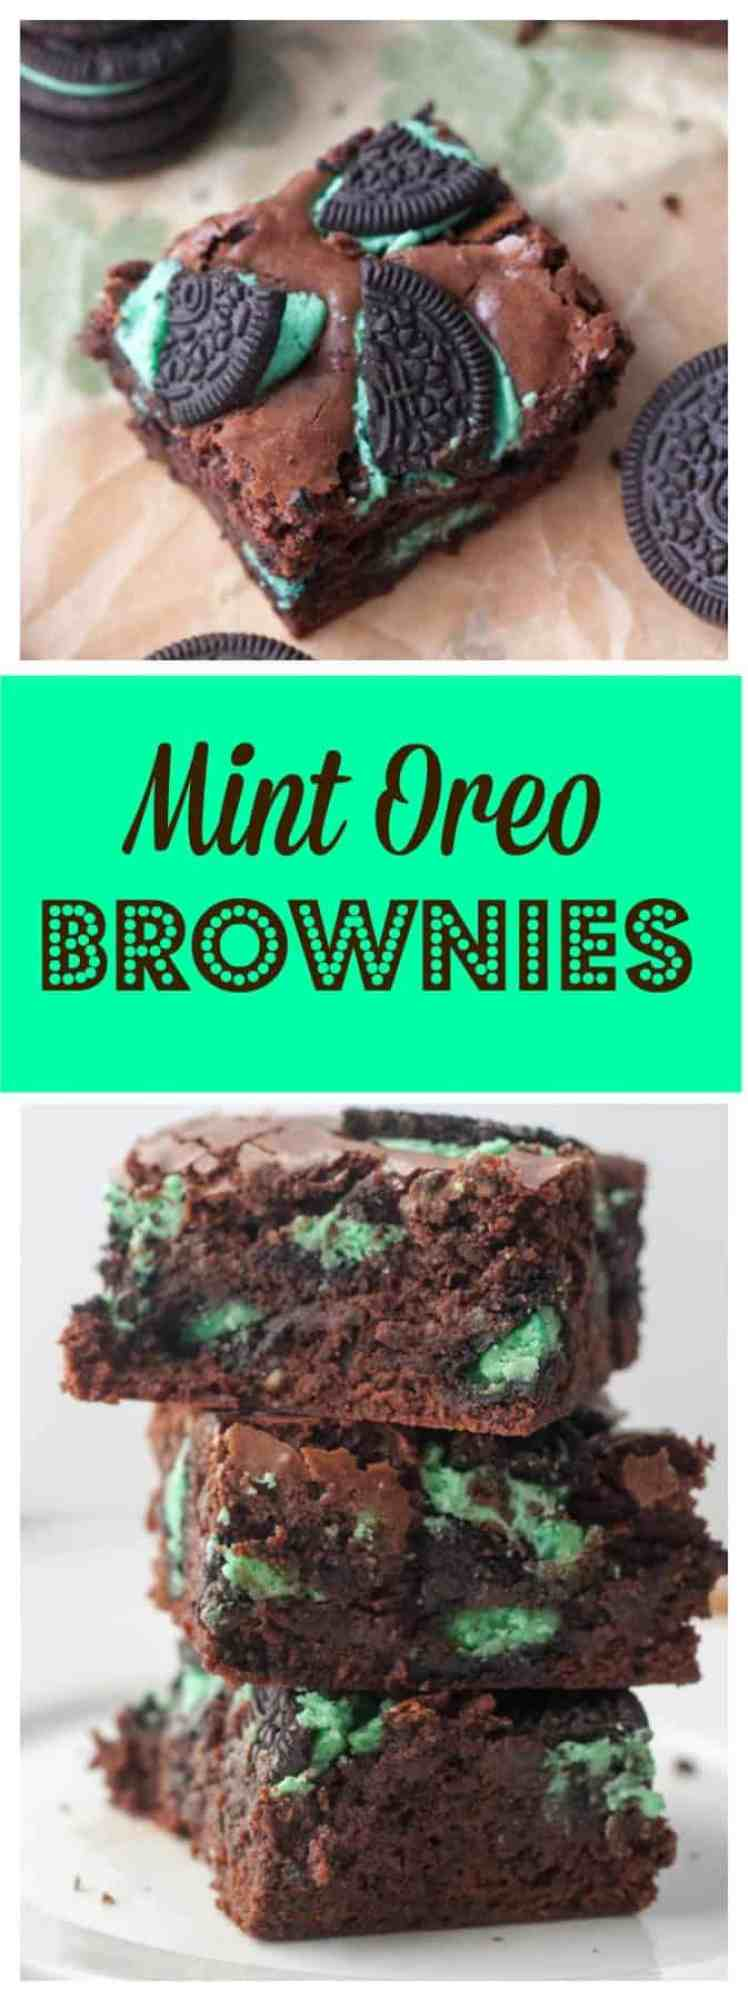 Classic fudgy brownies loaded up with Mint Oreo cookies!